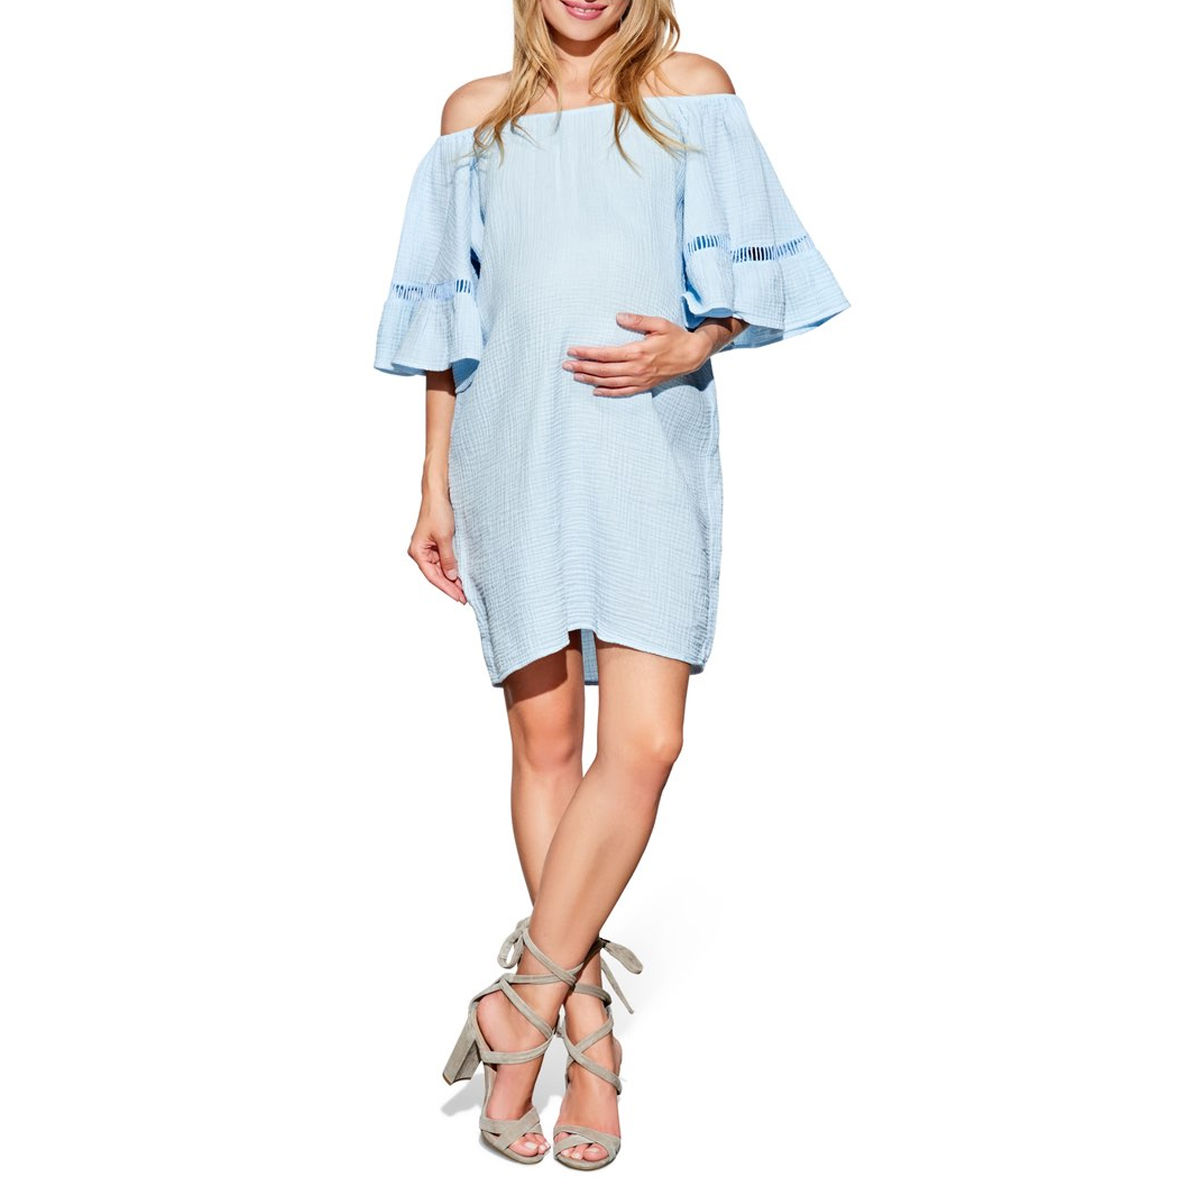 Communication on this topic: Maternity Fashion: 7 days, 7 ways, maternity-fashion-7-days-7-ways/